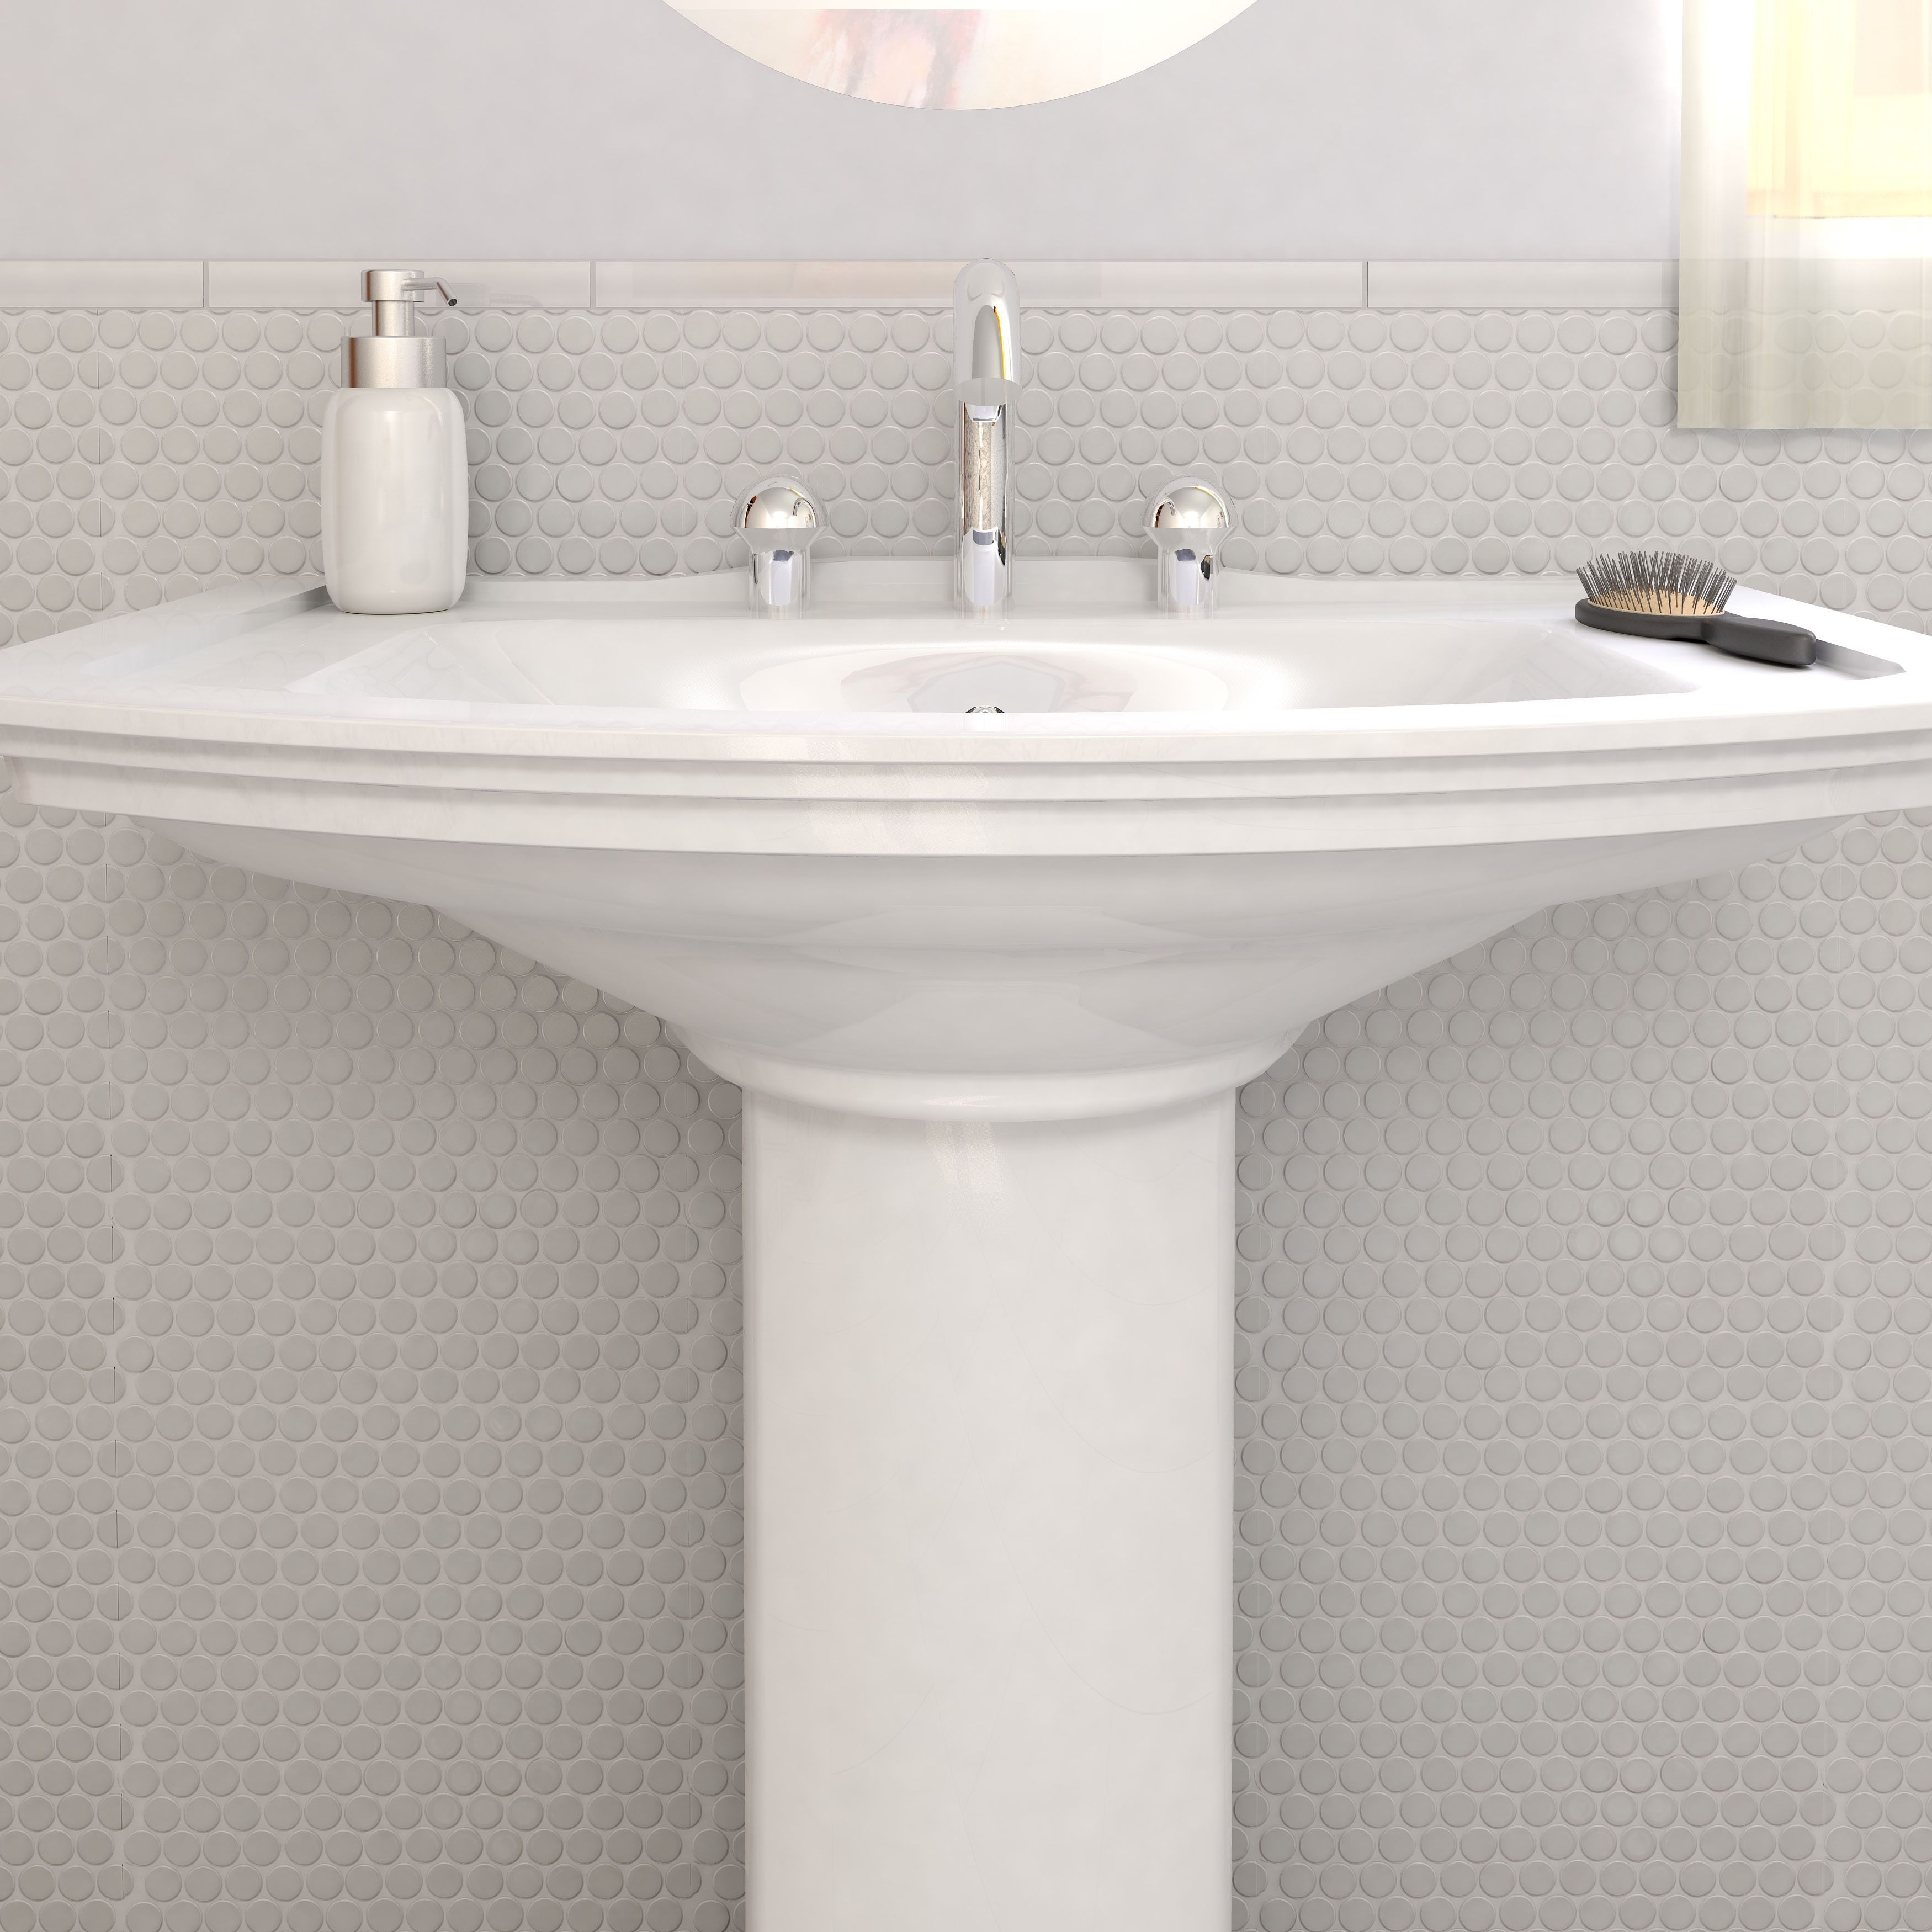 Personalize any tiled area of your home with these white easy-to ...